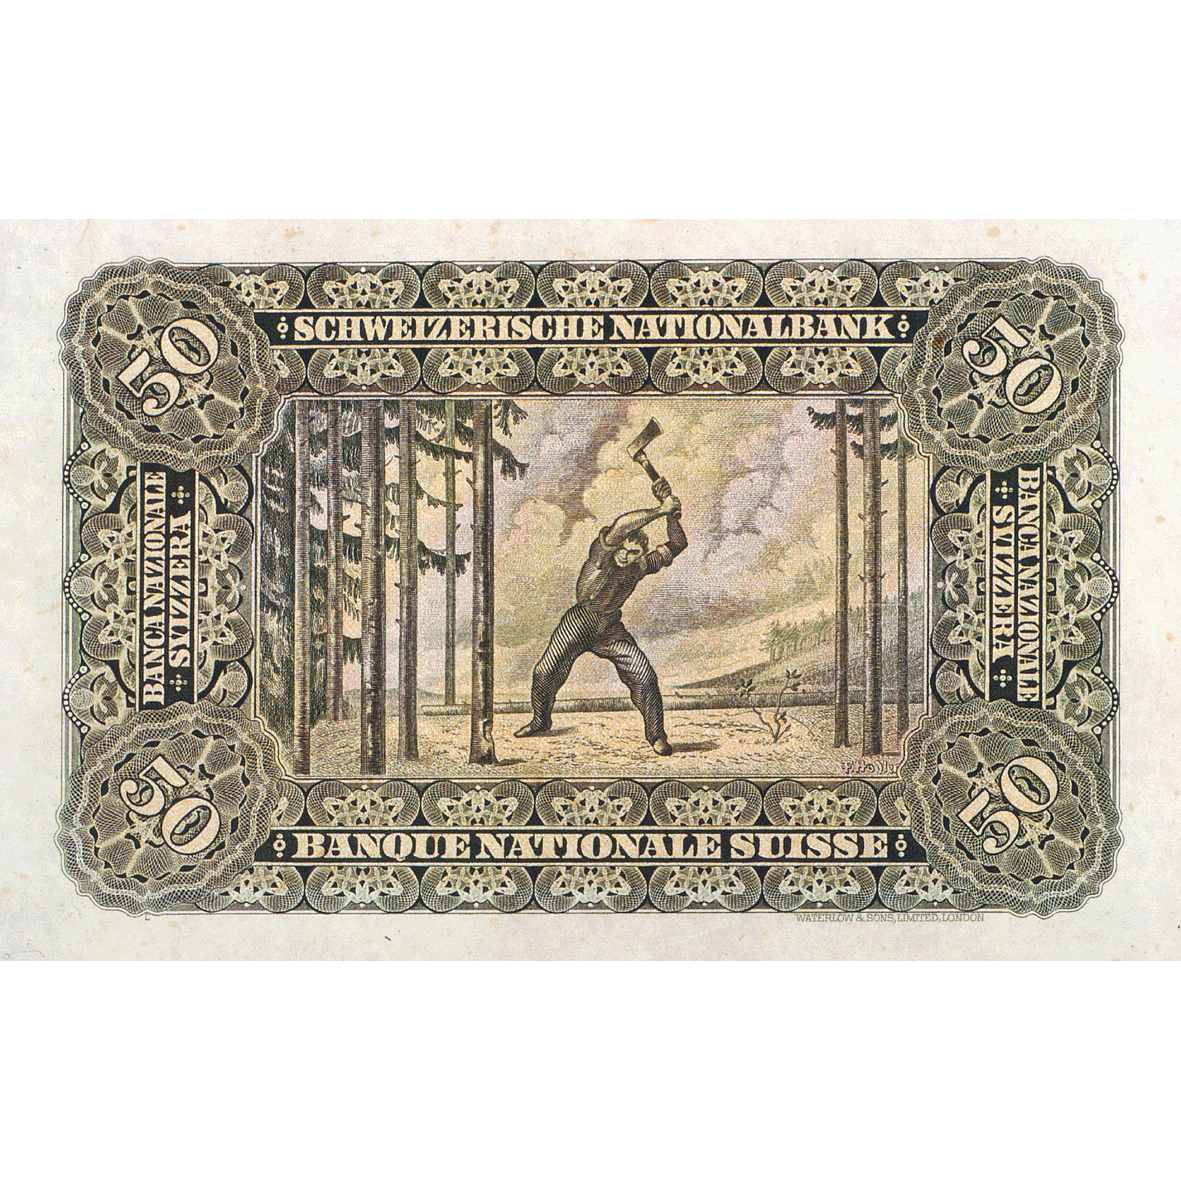 Swiss Confederation, 50 Francs (2nd Banknote Series, in Circulation 1911-1980) (reverse)